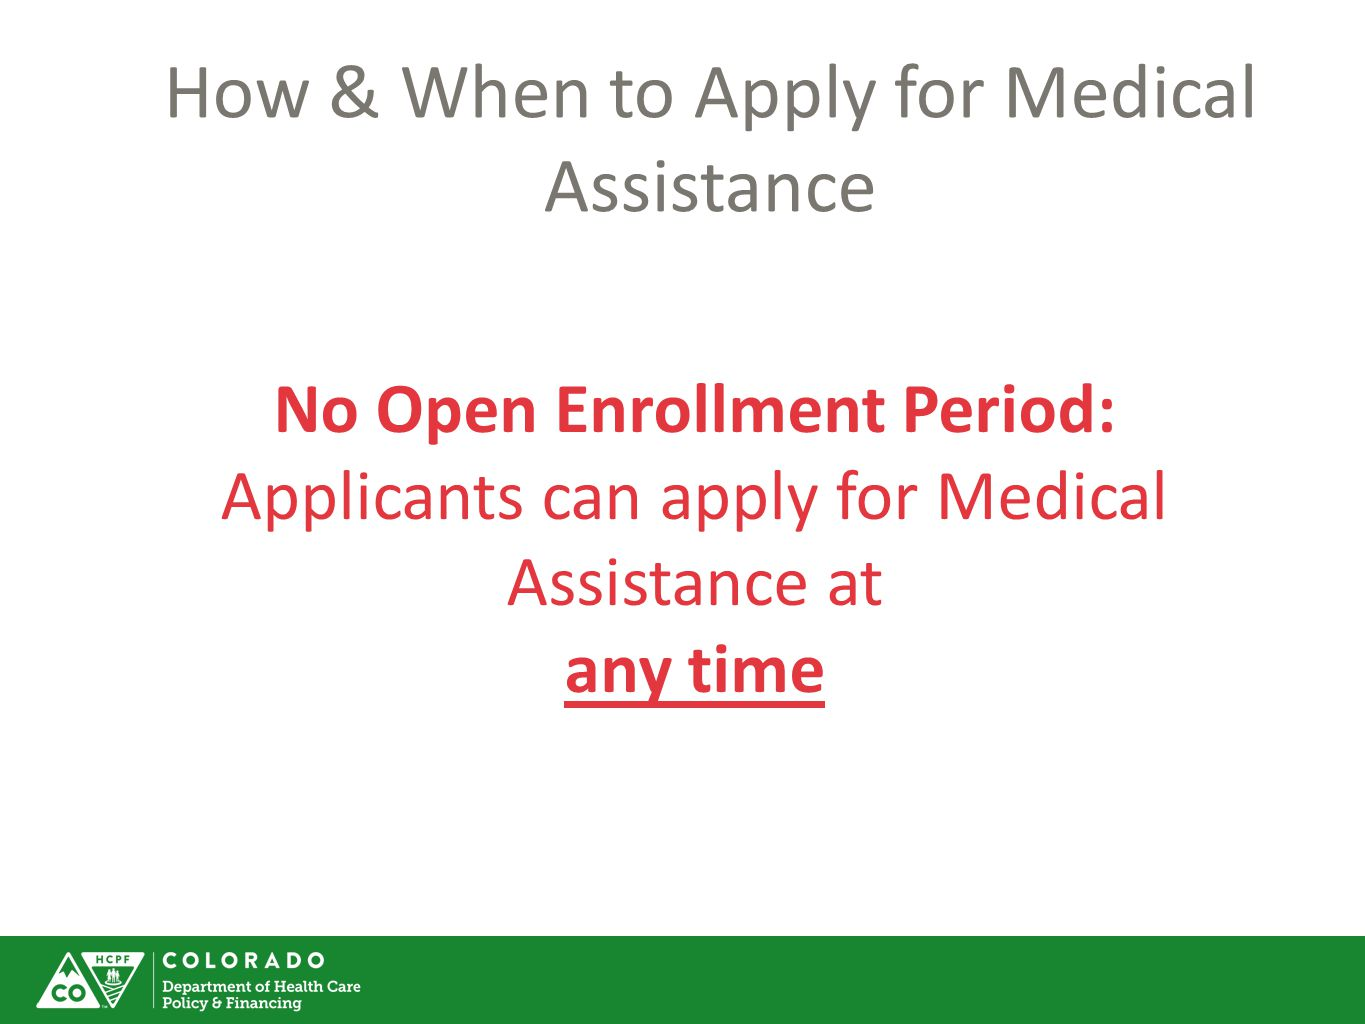 How & When to Apply for Medical Assistance